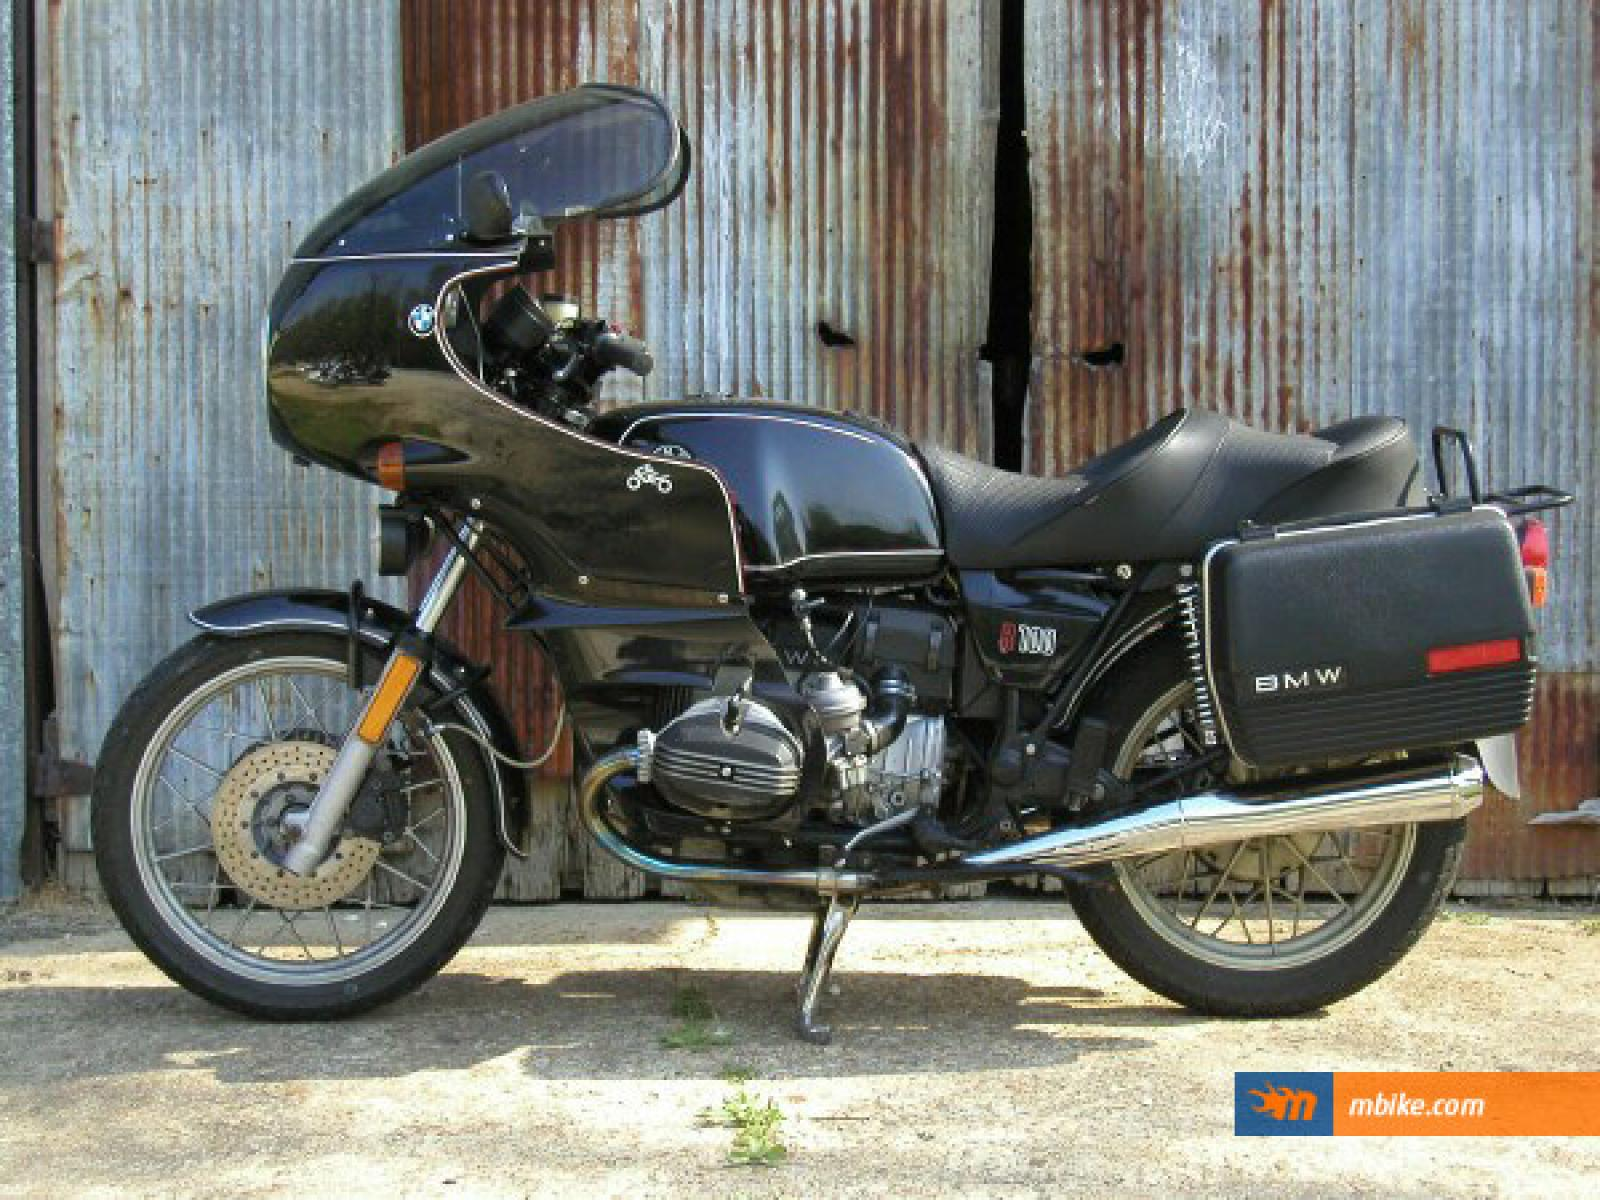 BMW R100RS 1981 images #4632